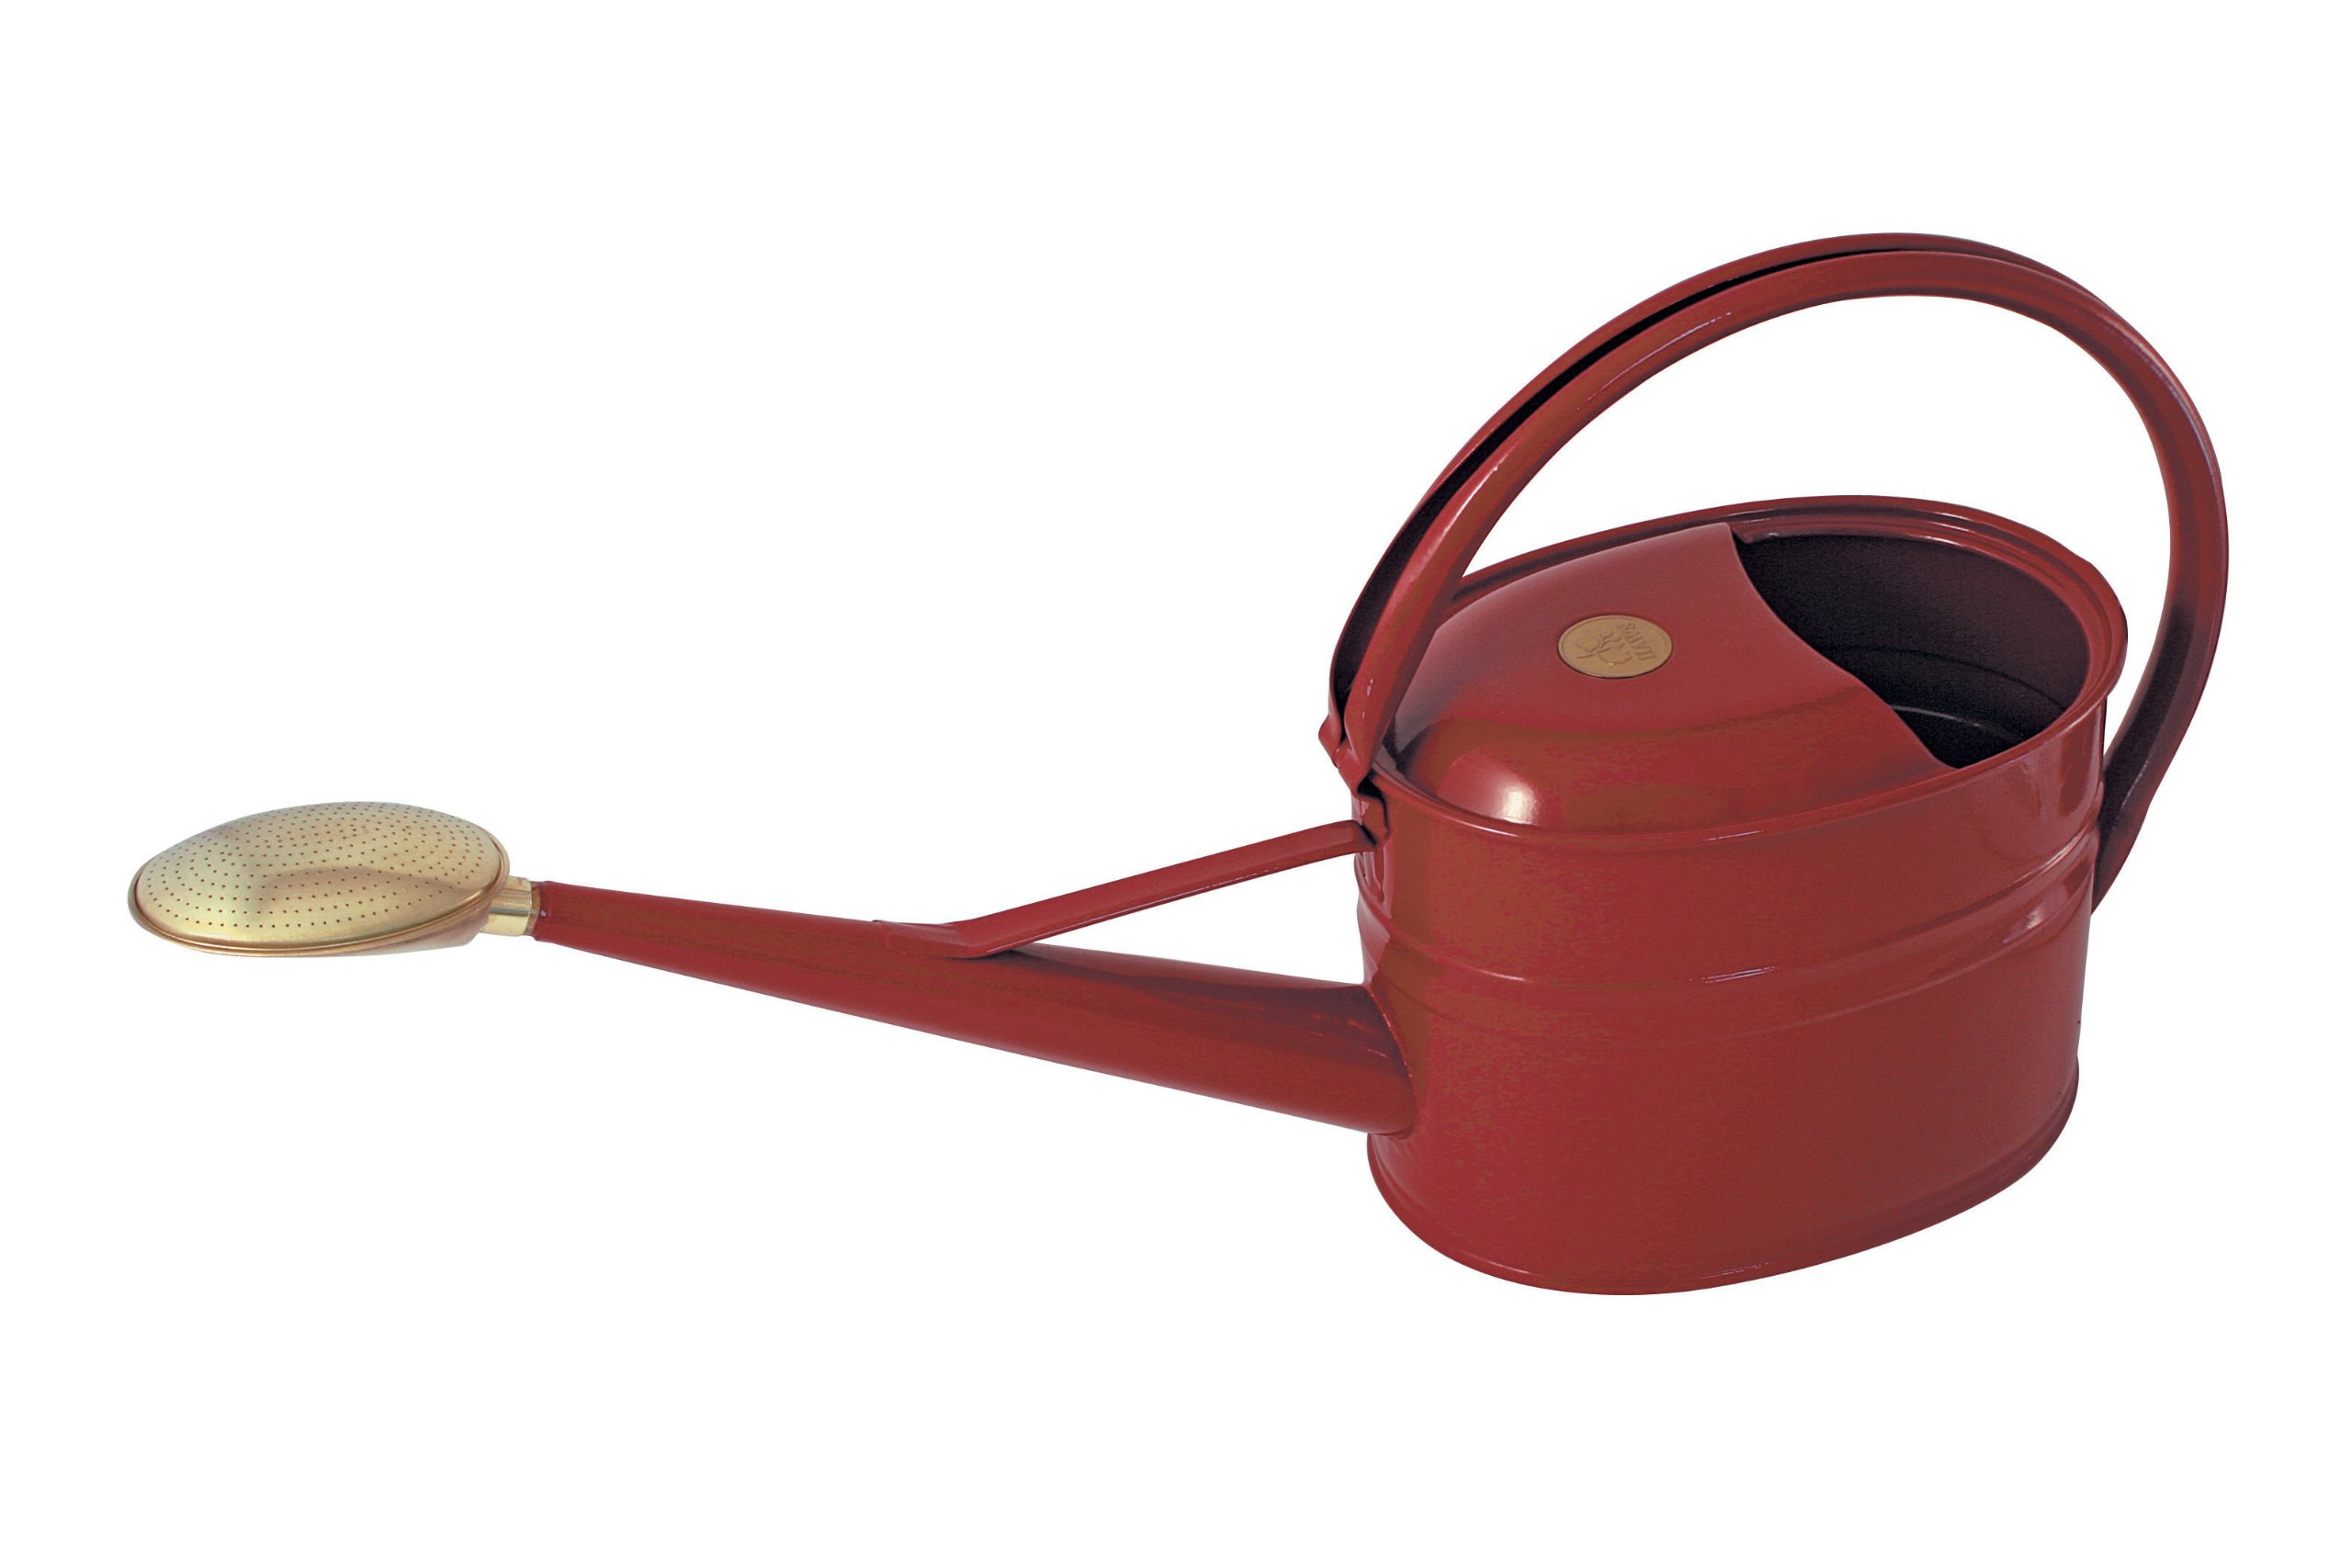 Bosmere Haws Slimcan Metal Watering Can with Oval Rose, 1.3-Gallon/5-Liter, Burgundy